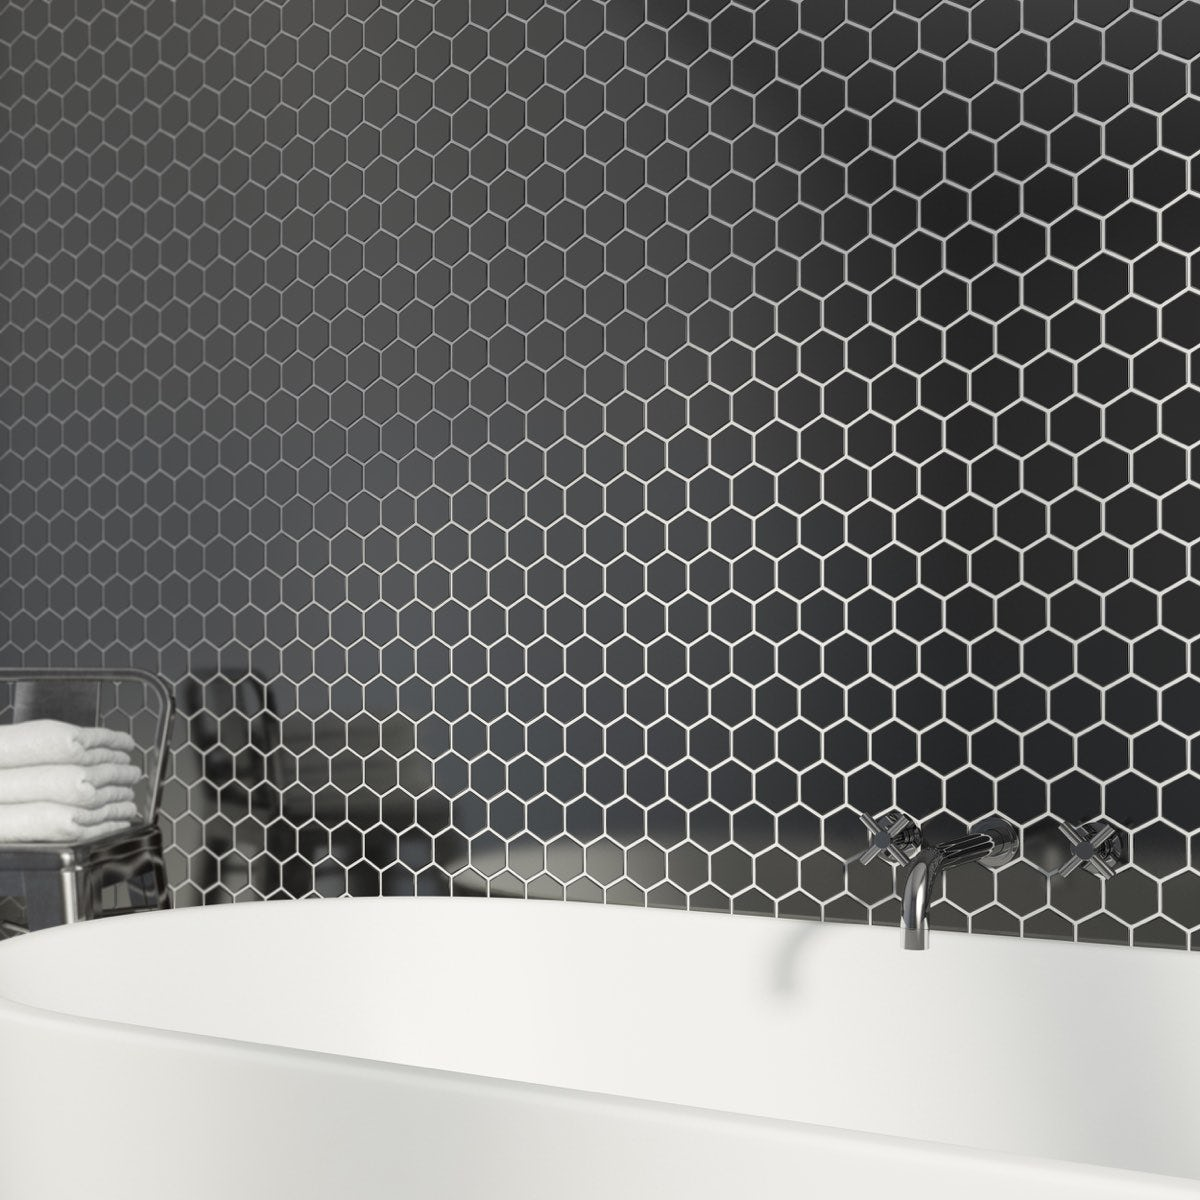 British Ceramic Tile Mosaic Hex Black Gloss Tile 300mm X 300mm   1 Sheet